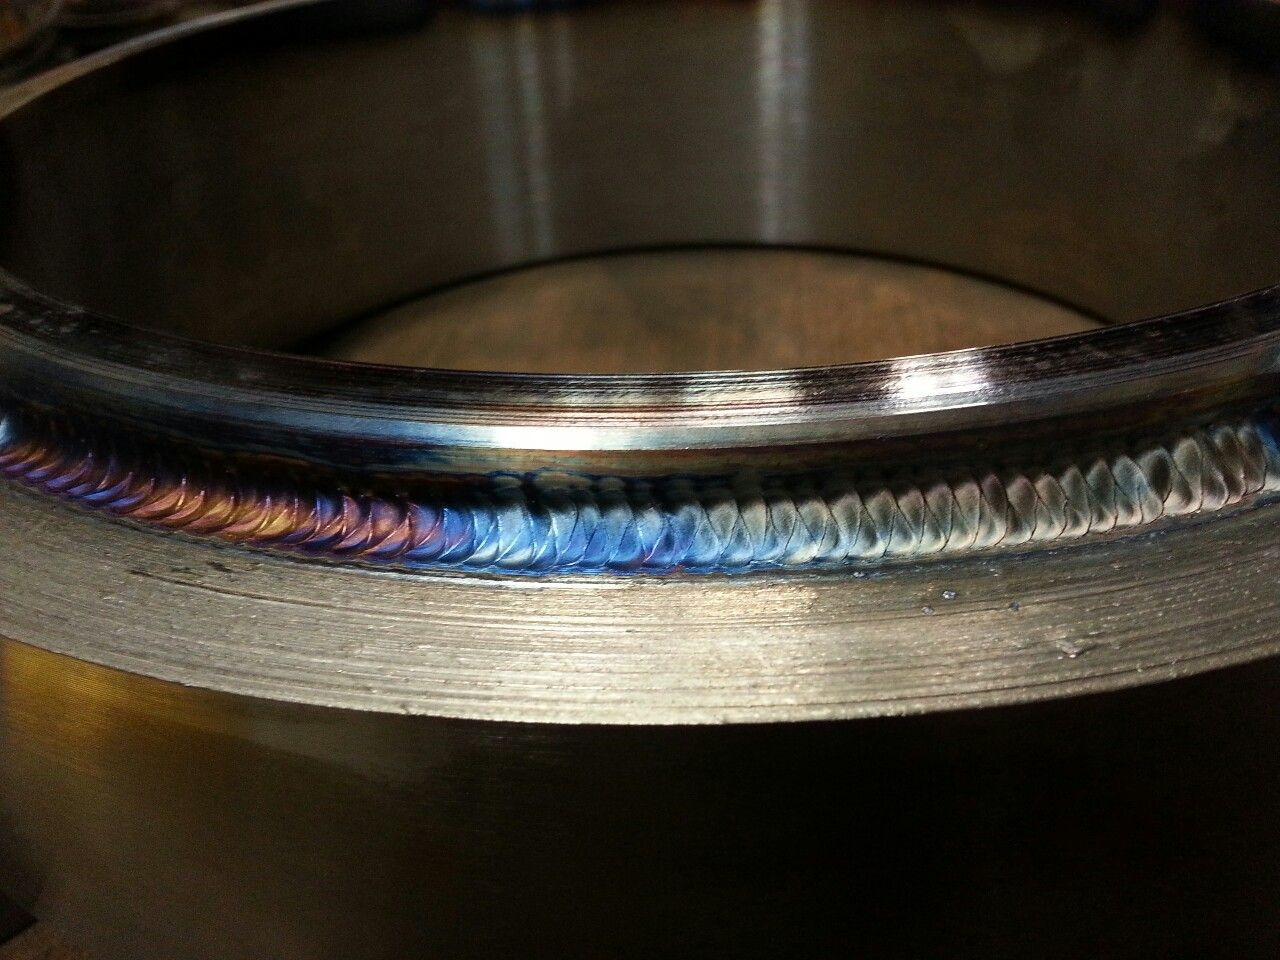 Tig welding 4130 steel - Find This Pin And More On Welding Wizardry